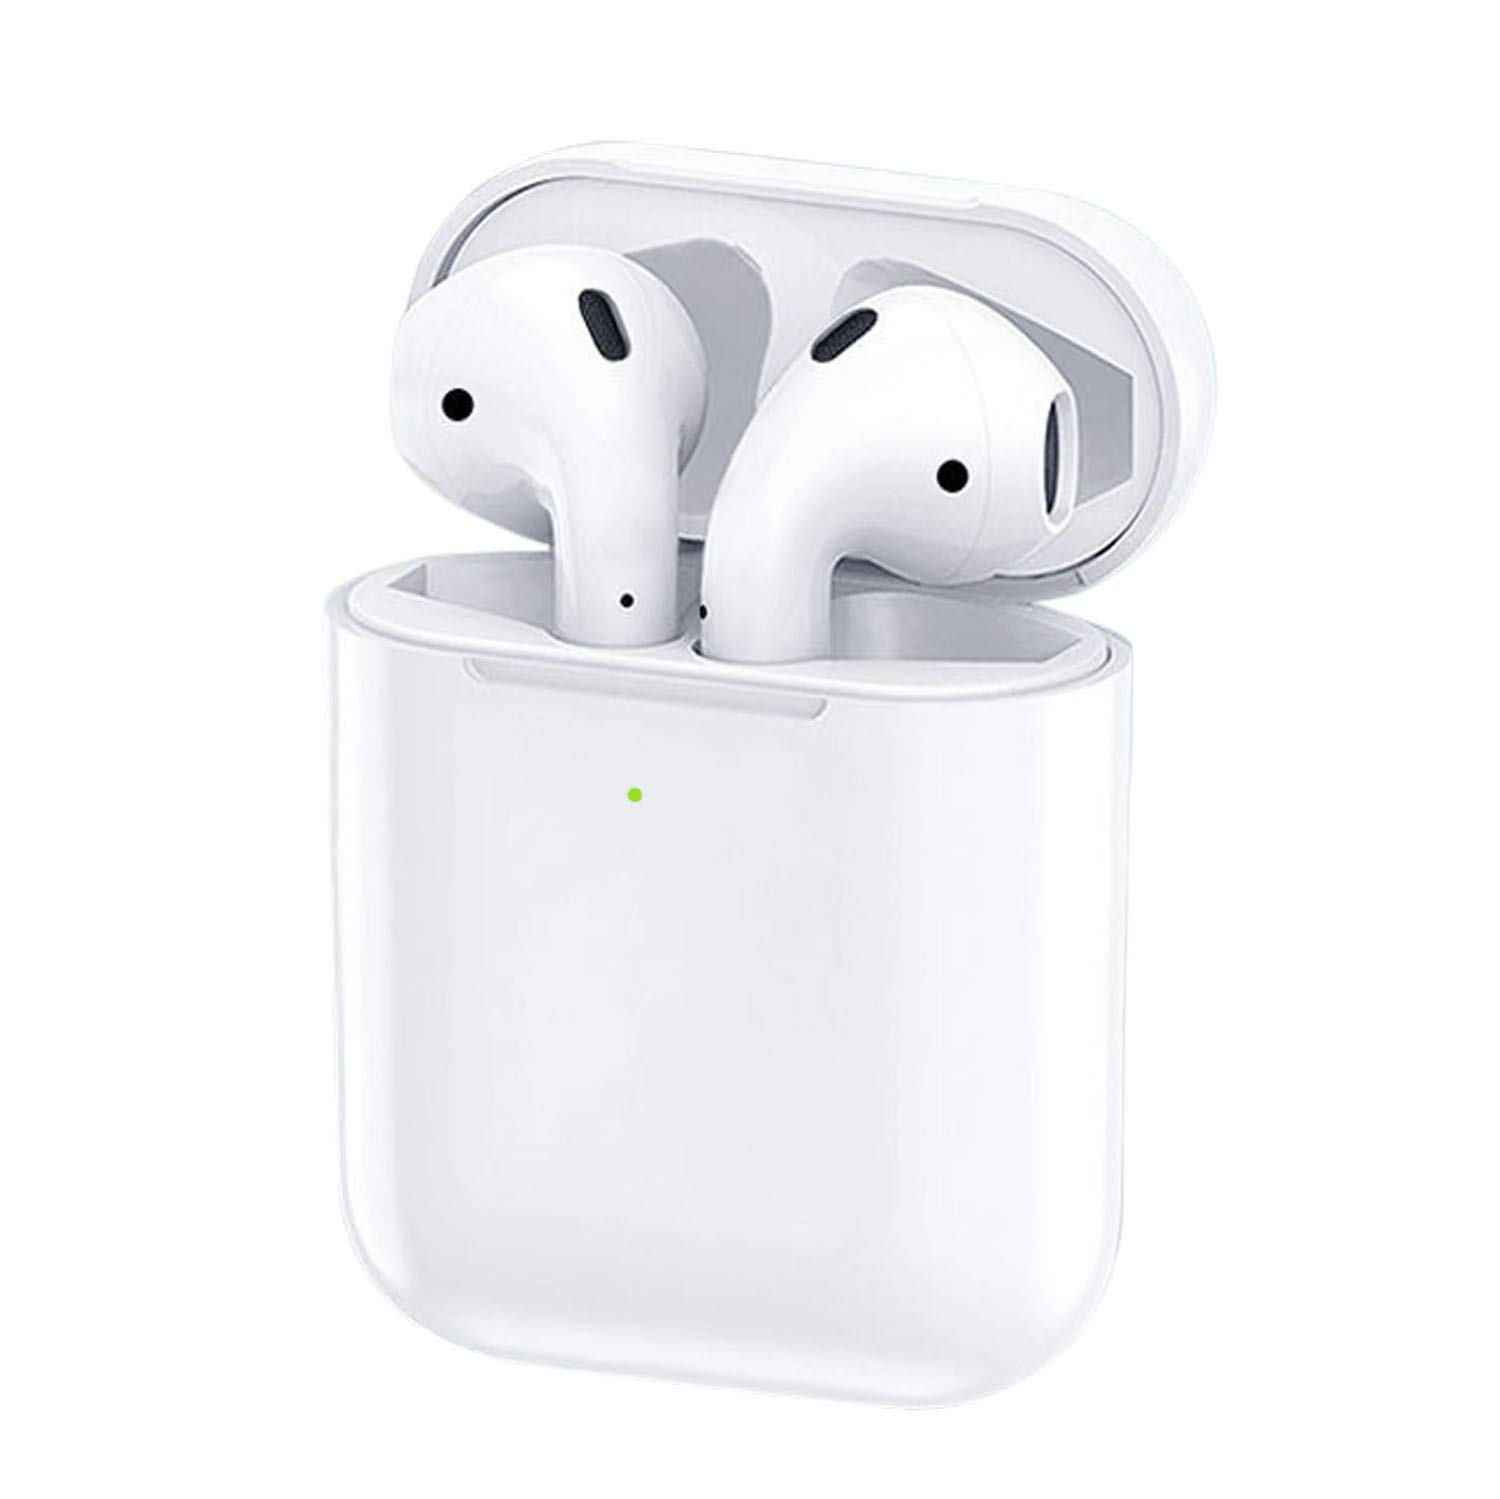 Wireless Earbuds Bluetooth Headphones with Wireless Charging Case